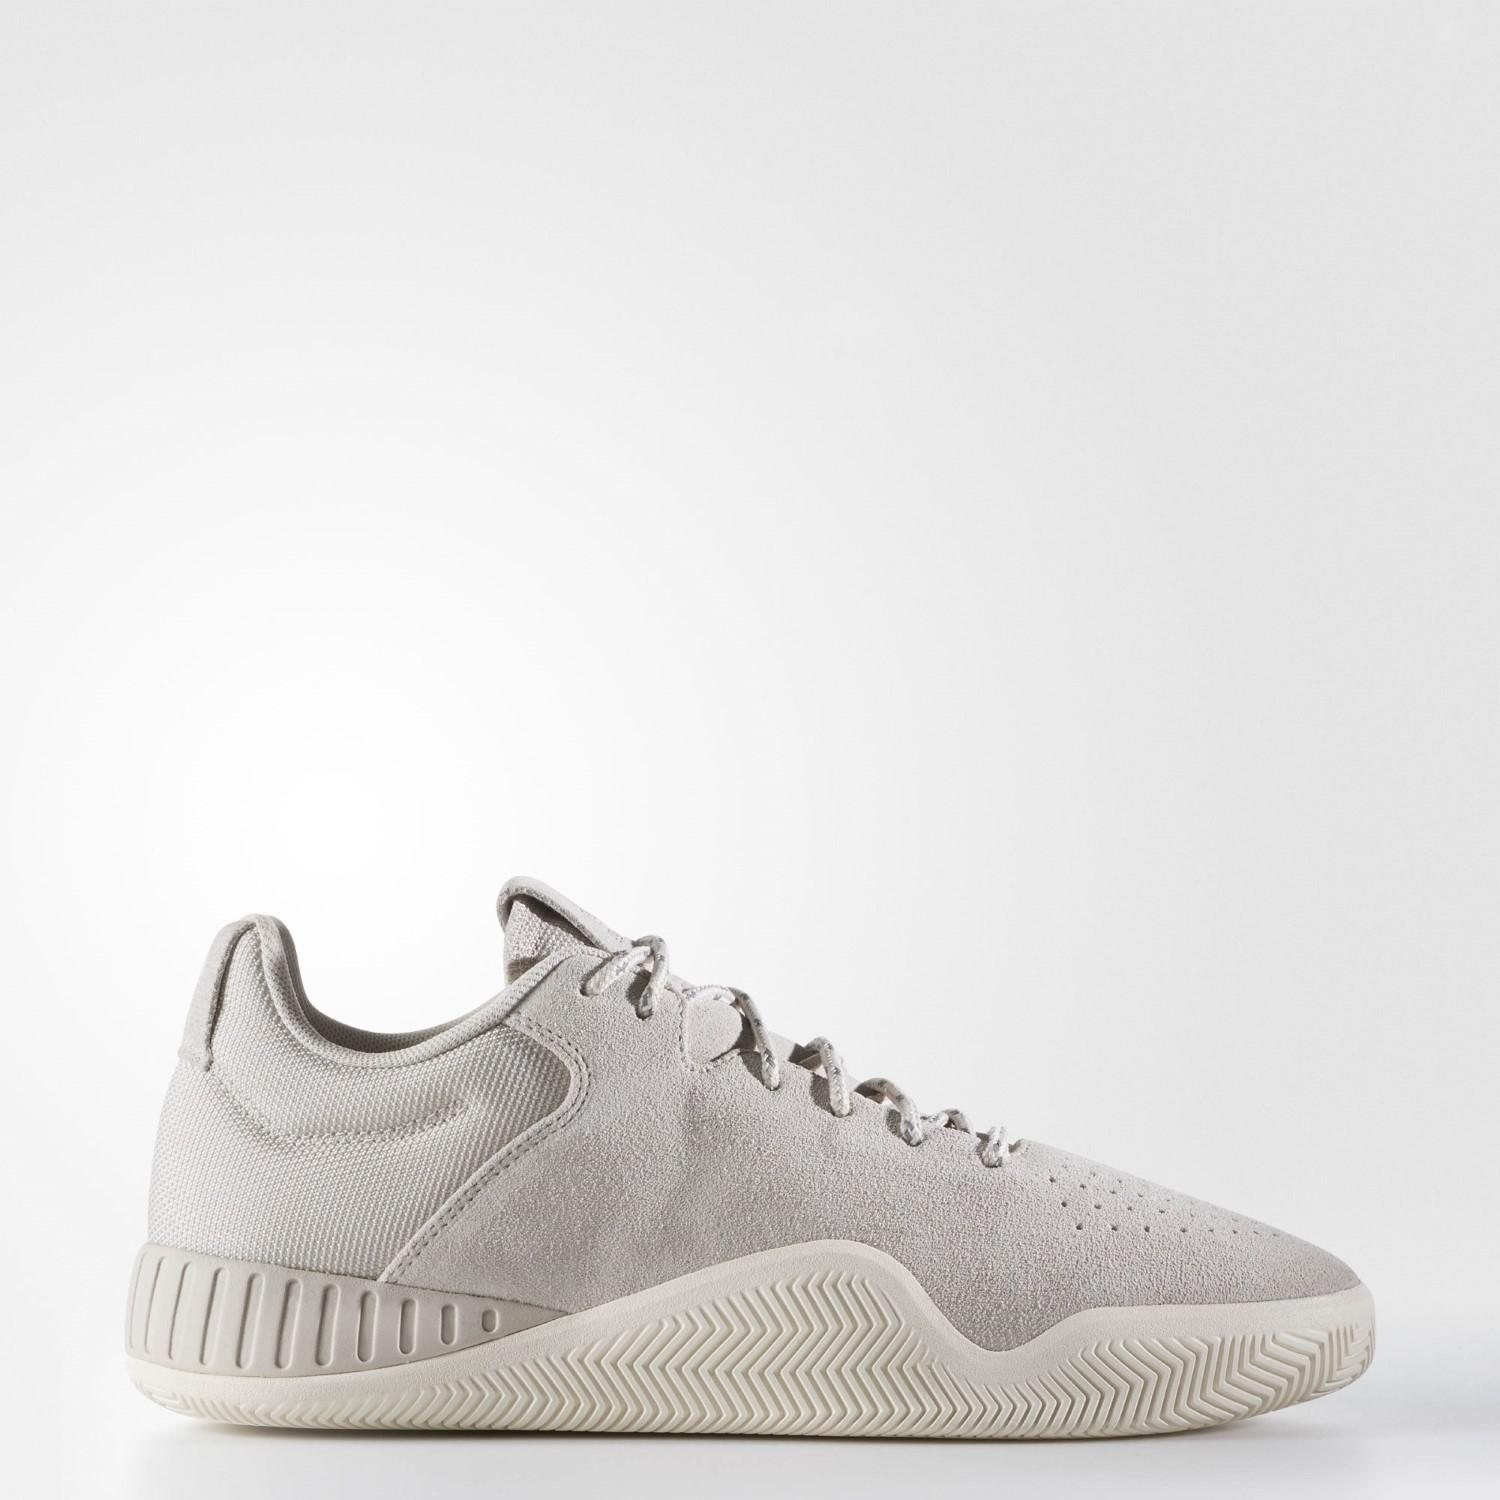 5b14136644c Lyst - adidas Originals Tubular Instinct Low Shoes in Brown